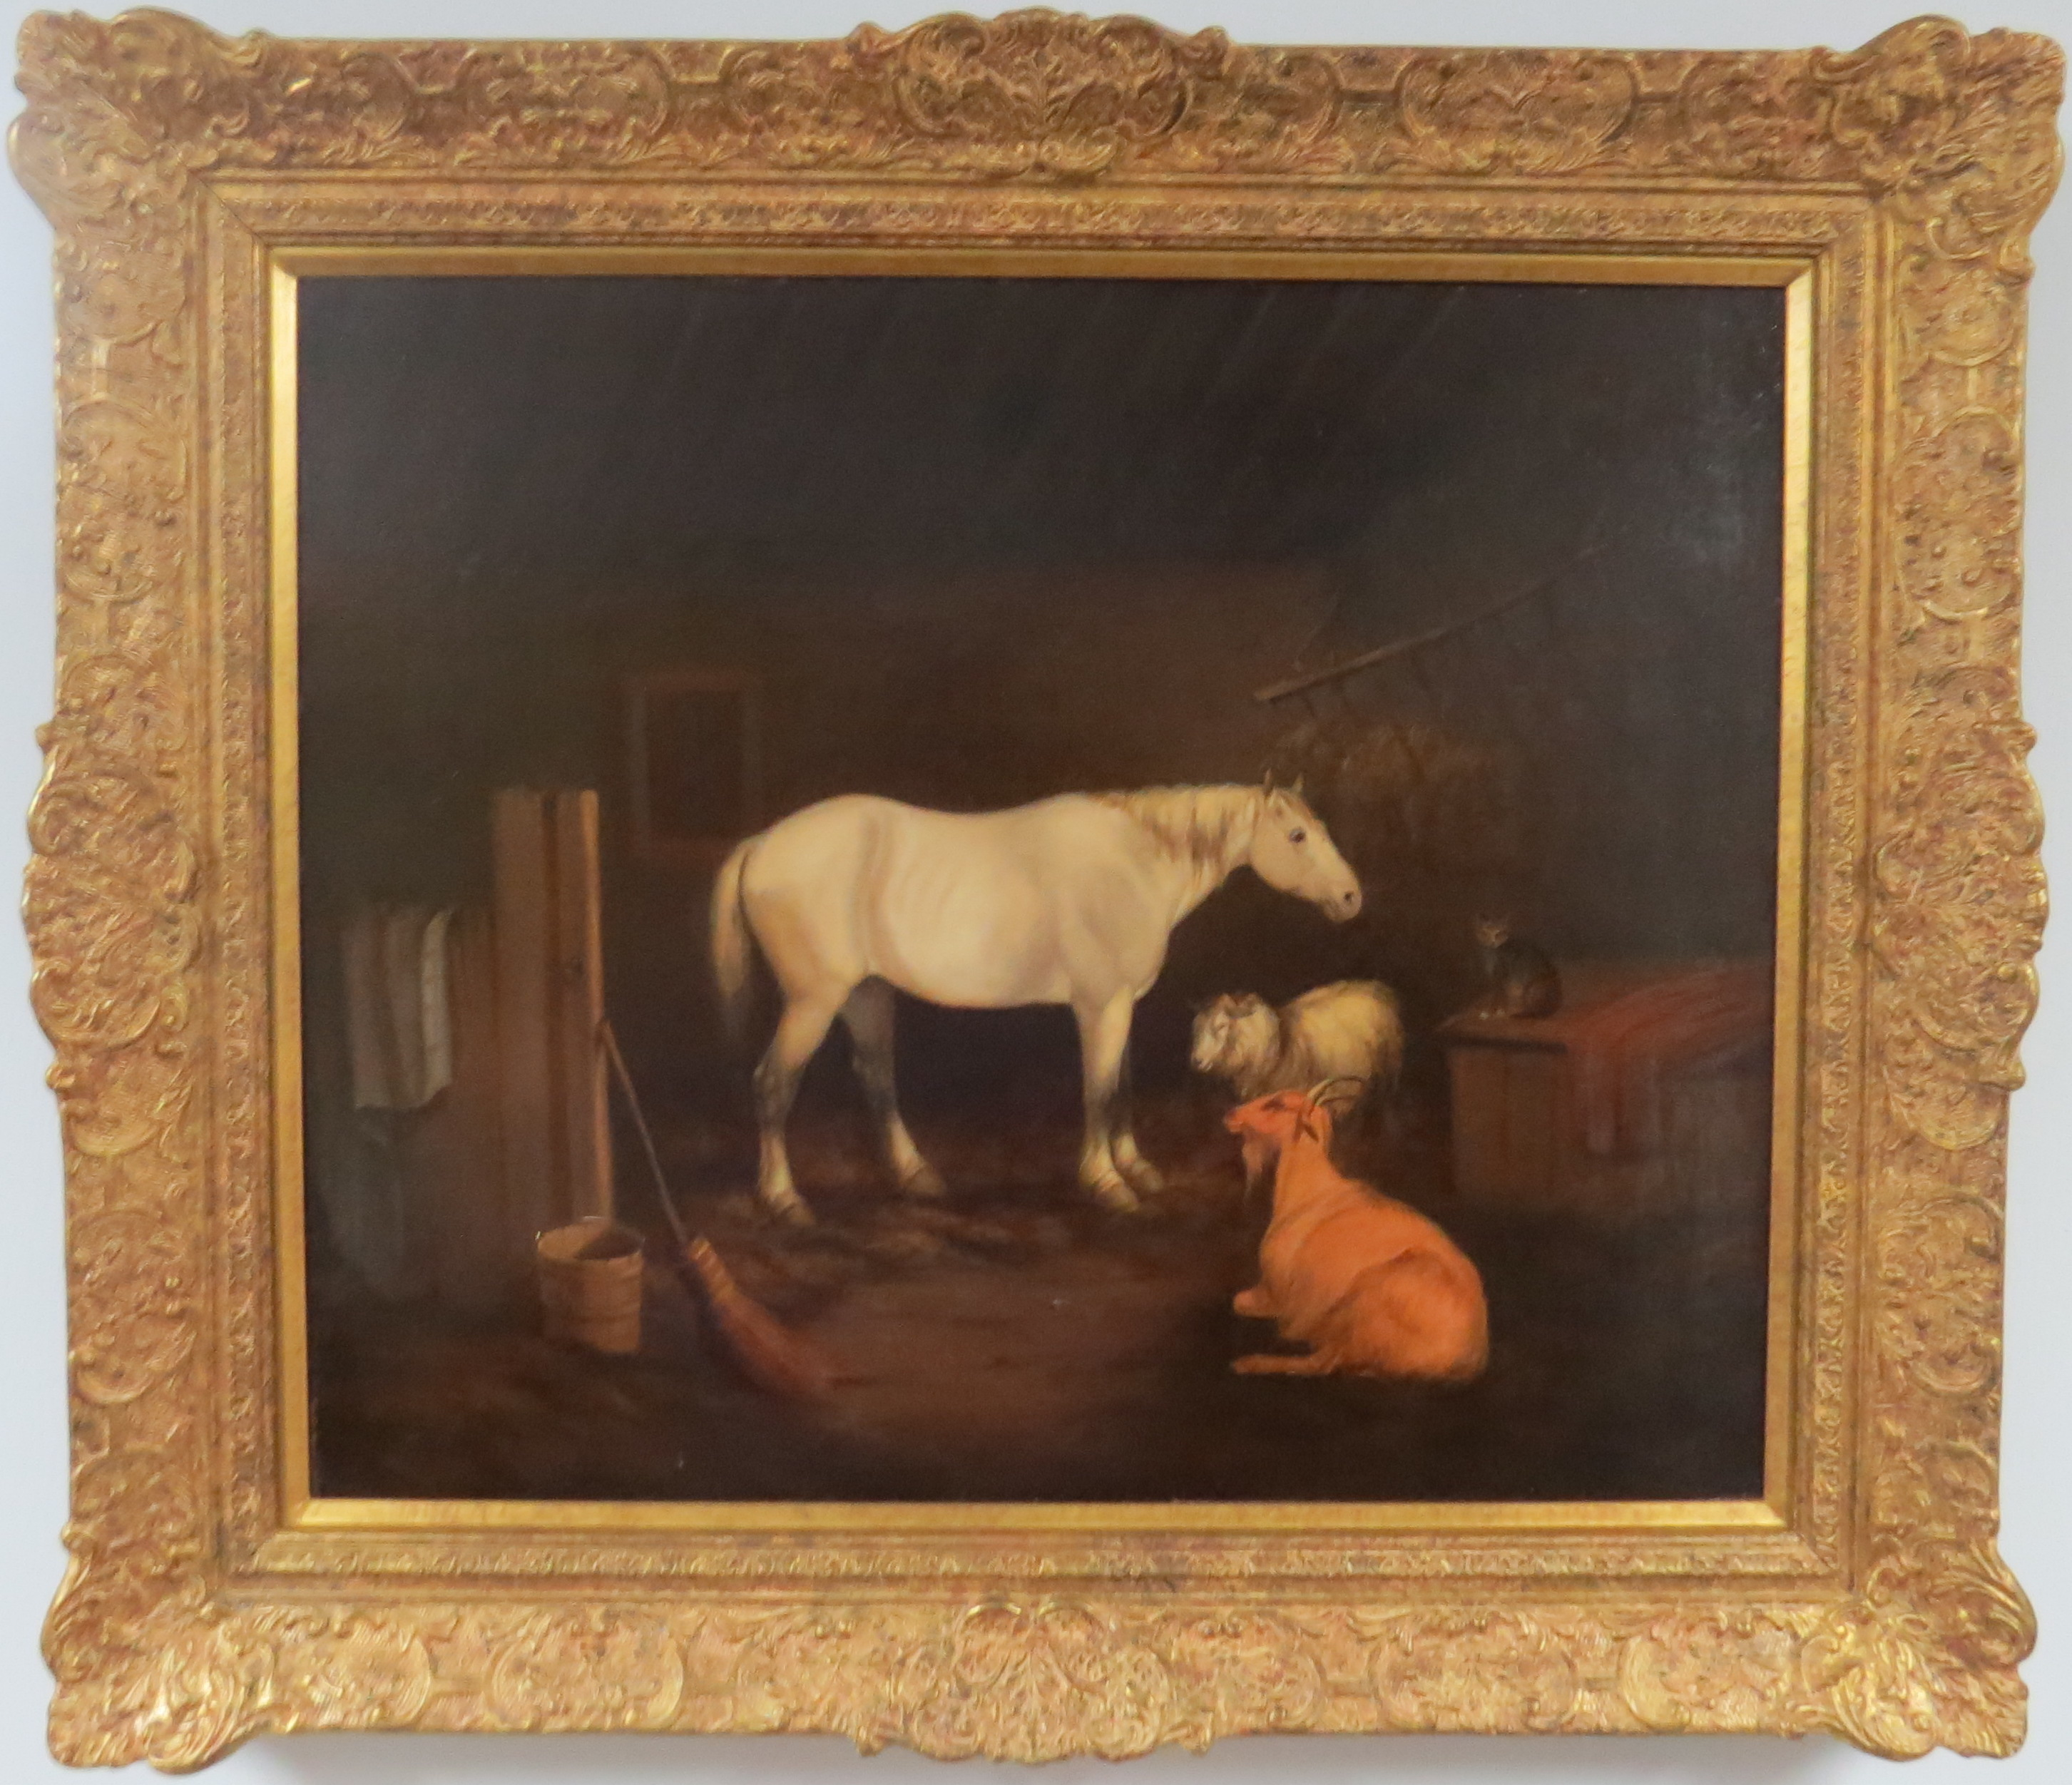 Oil on Canvas of a Stable Scene, Attributed to John Alfred Wheeler (English, 1821-1877)